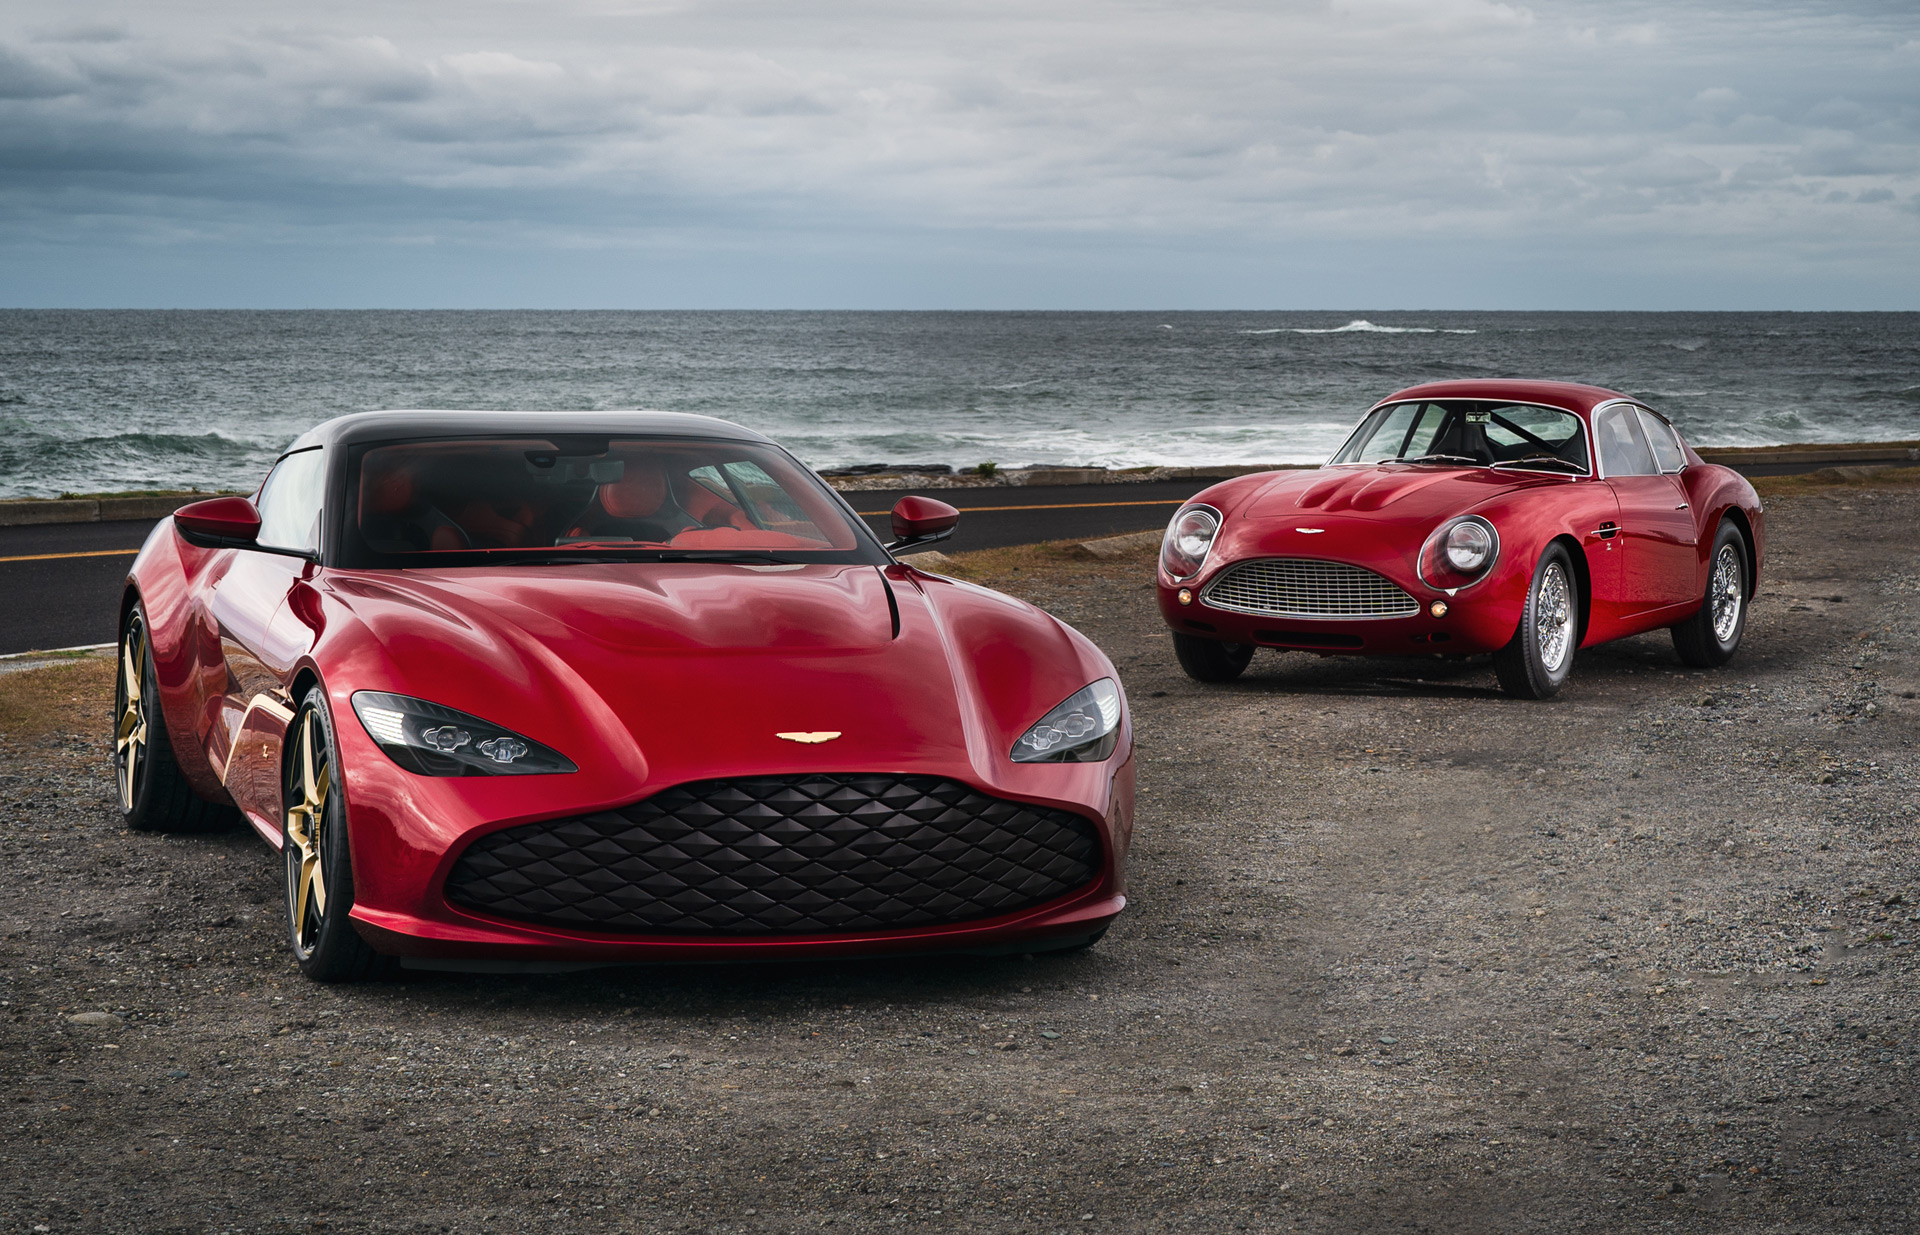 Aston Martin reveals DBS GT Zagato to be sold alongside DB4 GT Zagato continuation car